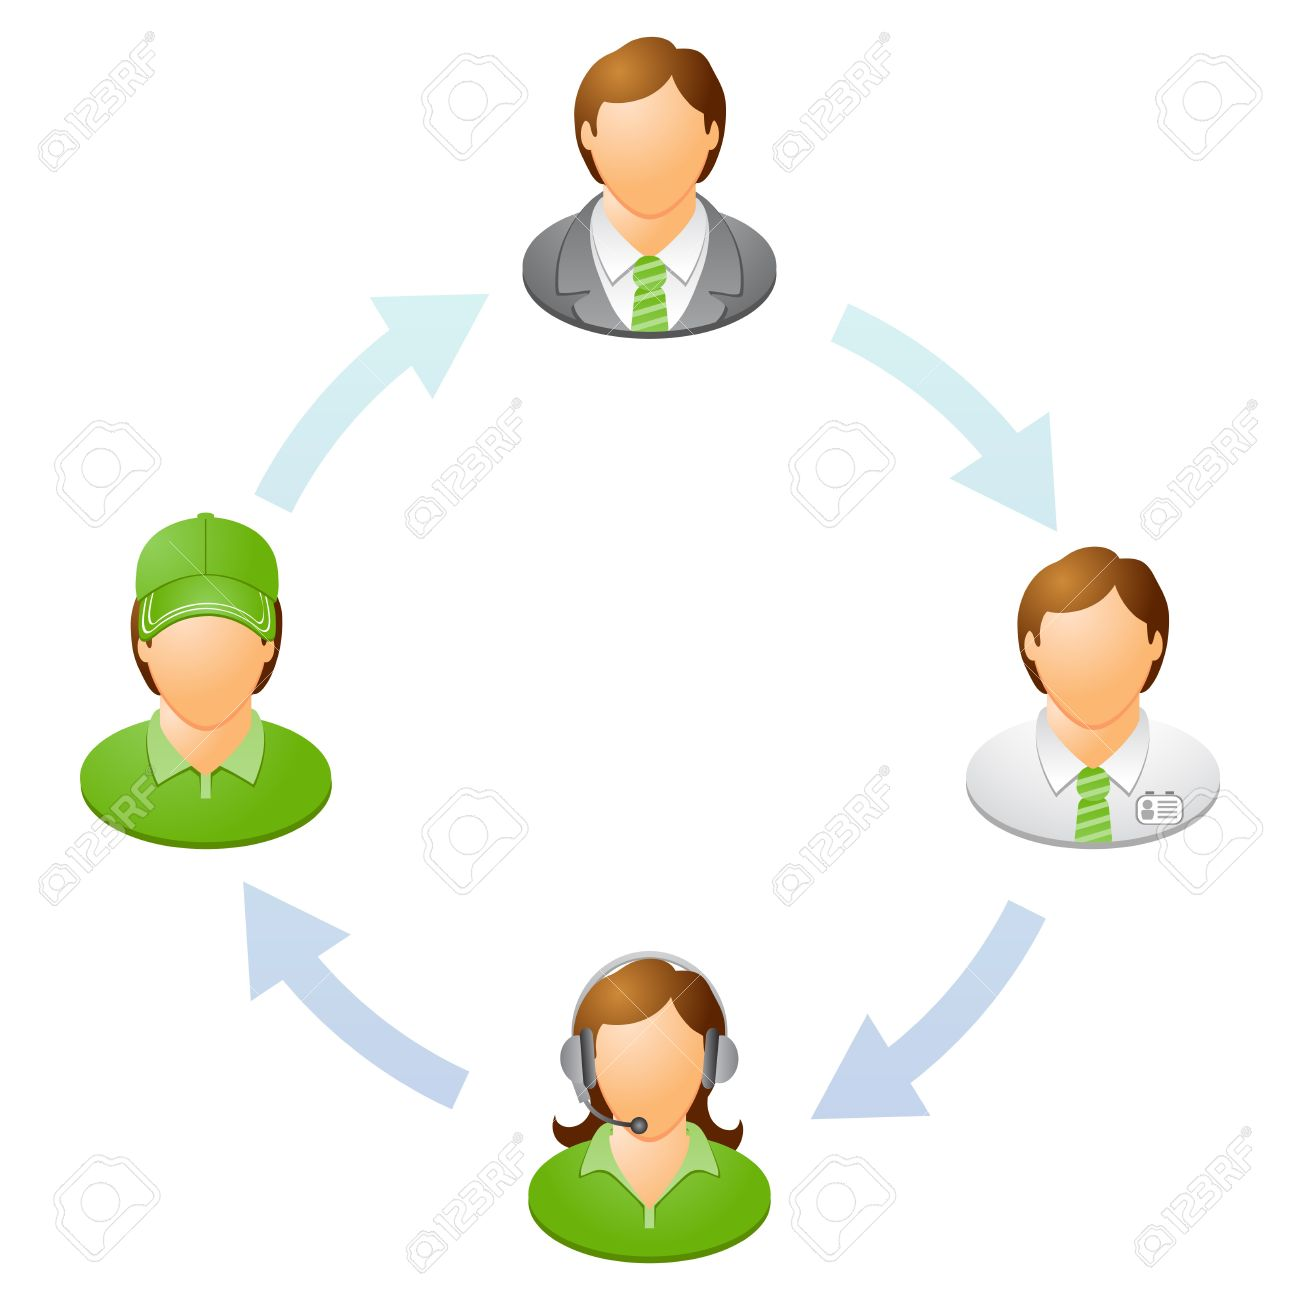 The interaction of the staff Teamwork flow chart Network of